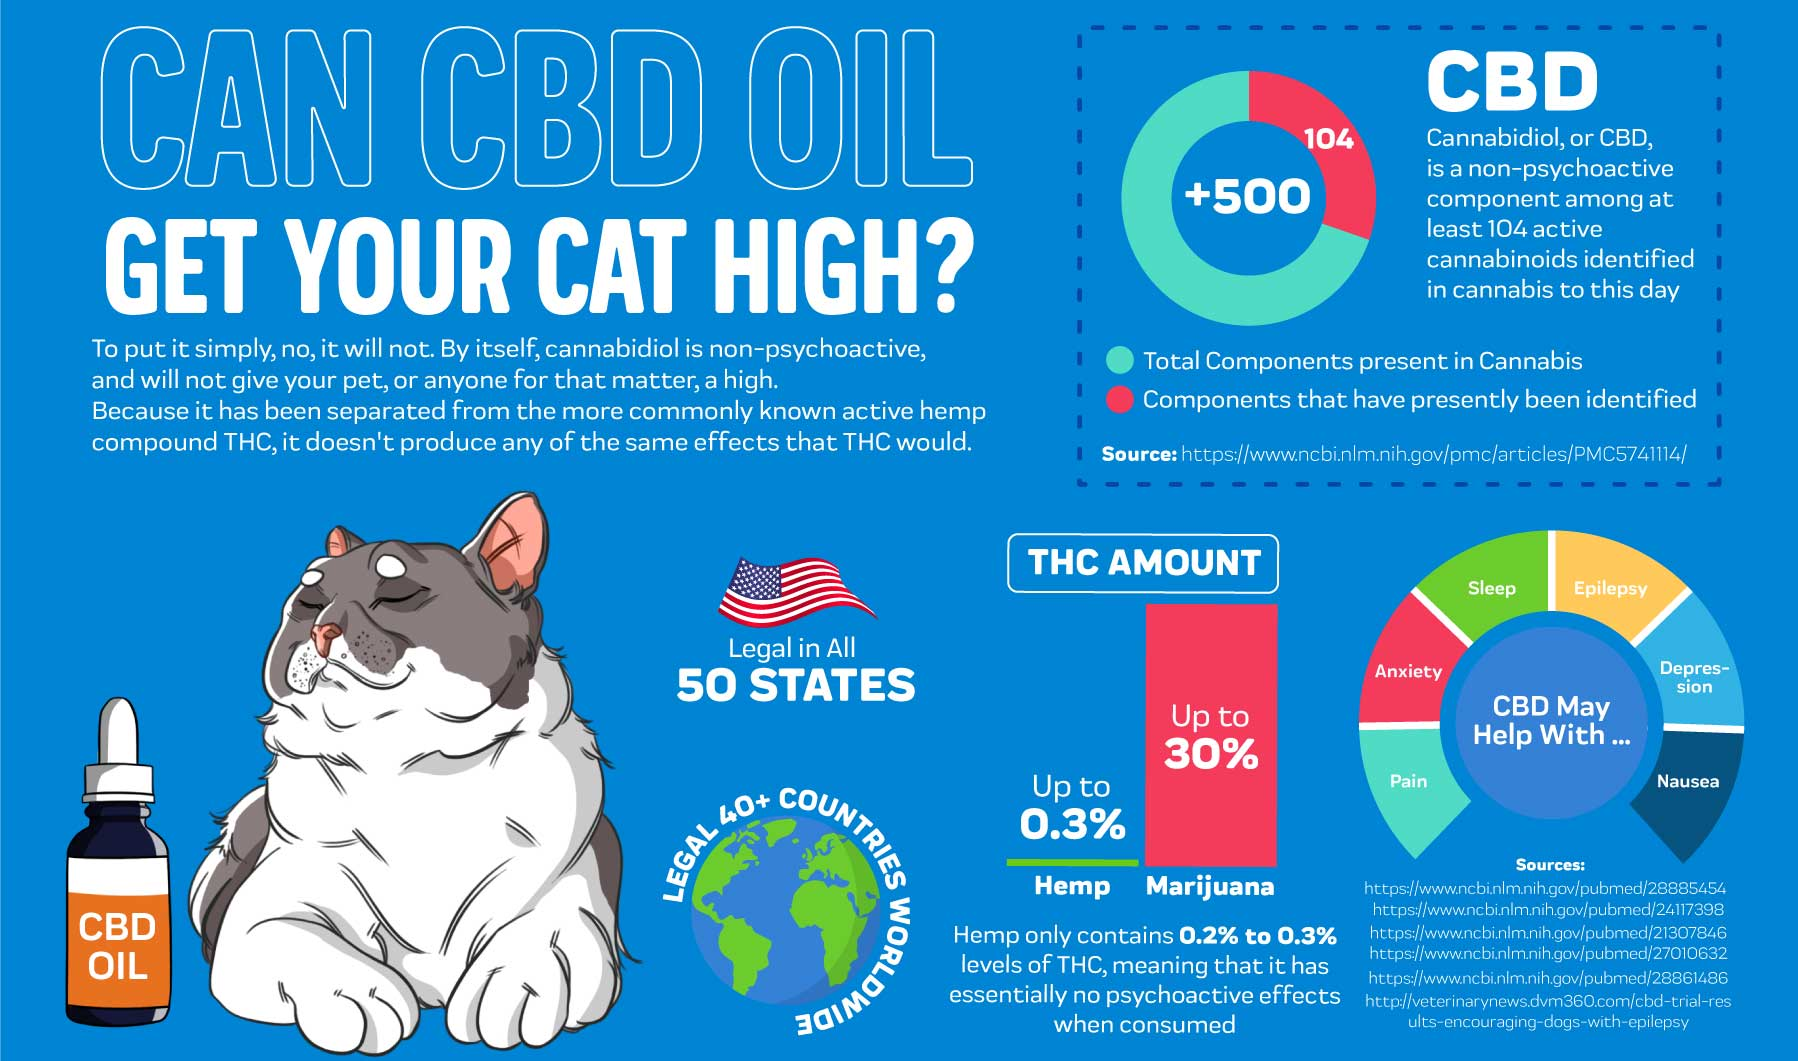 Can CBD Oil Get Your Cat High